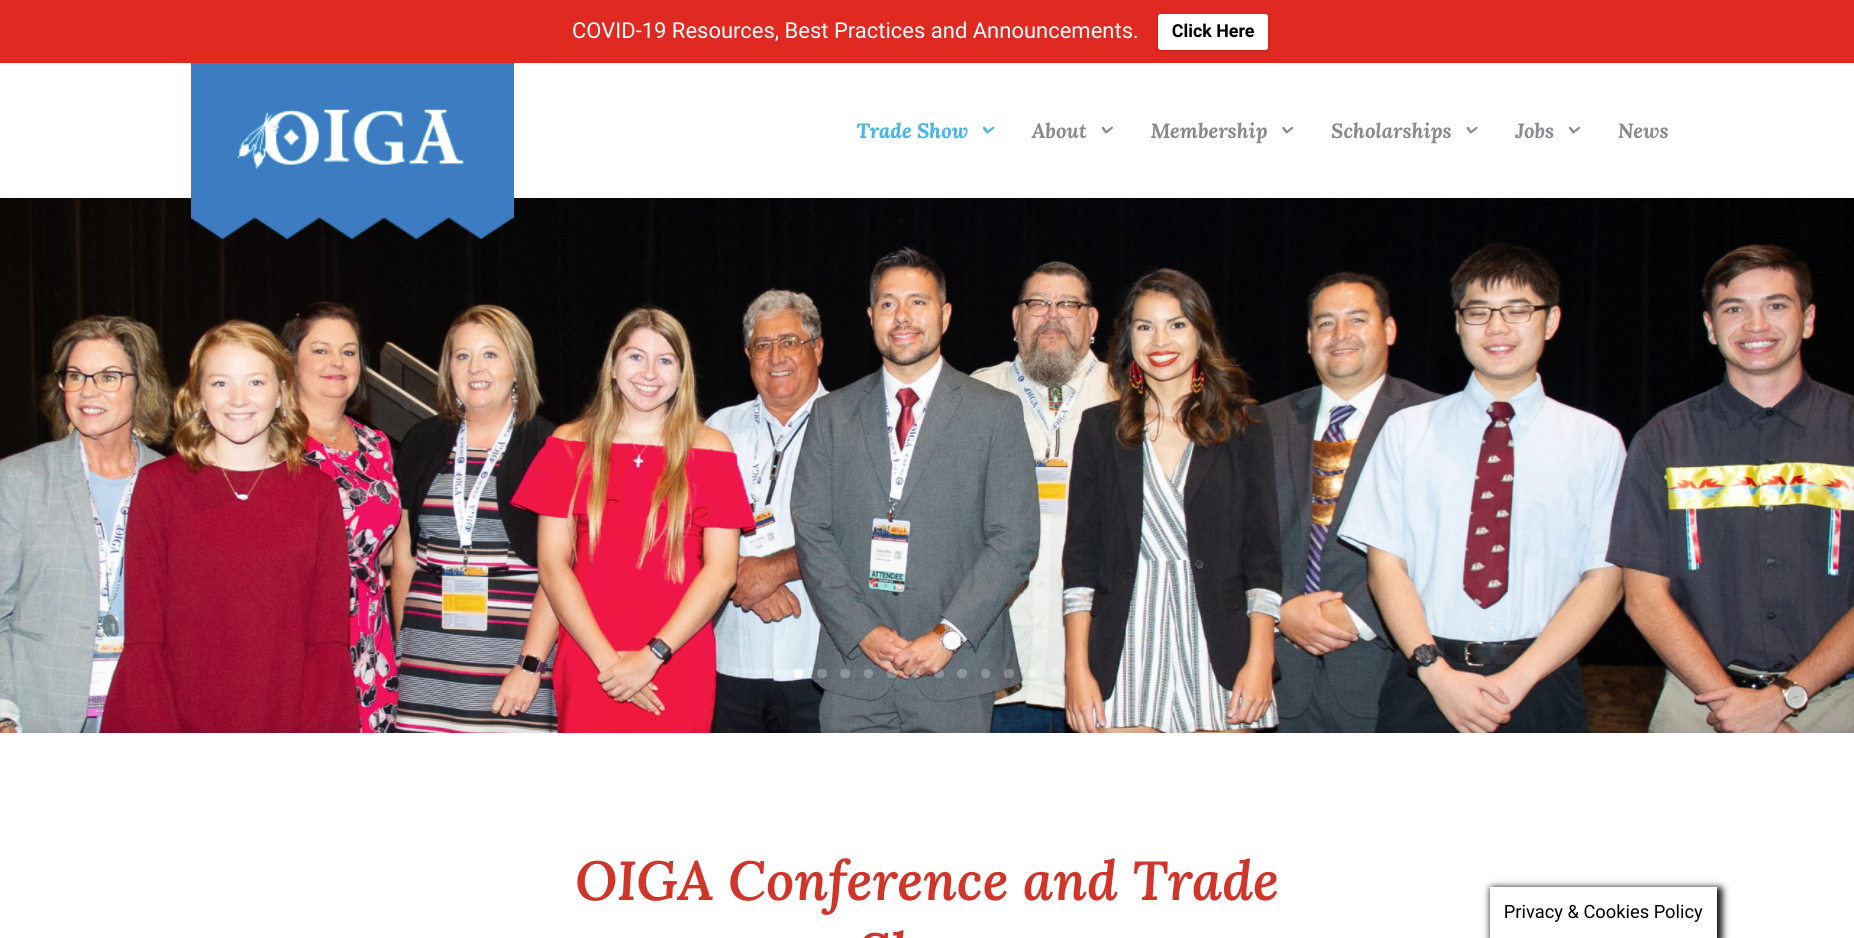 Three Reasons We're Excited to Attend the 2021 OIGA Conference